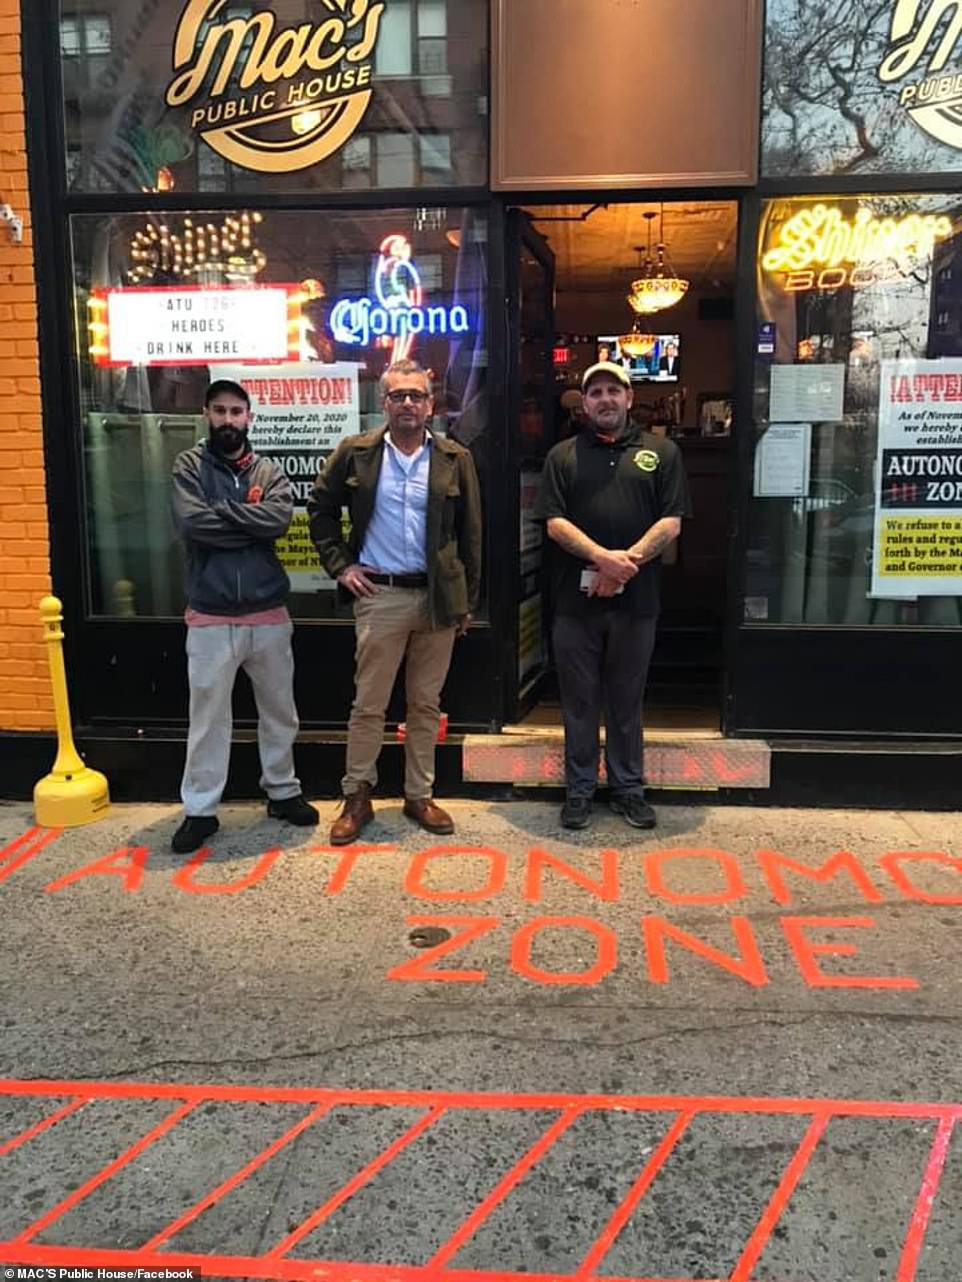 The owner ignored pandemic regulations and was briefly arrested by New York City Sheriff's